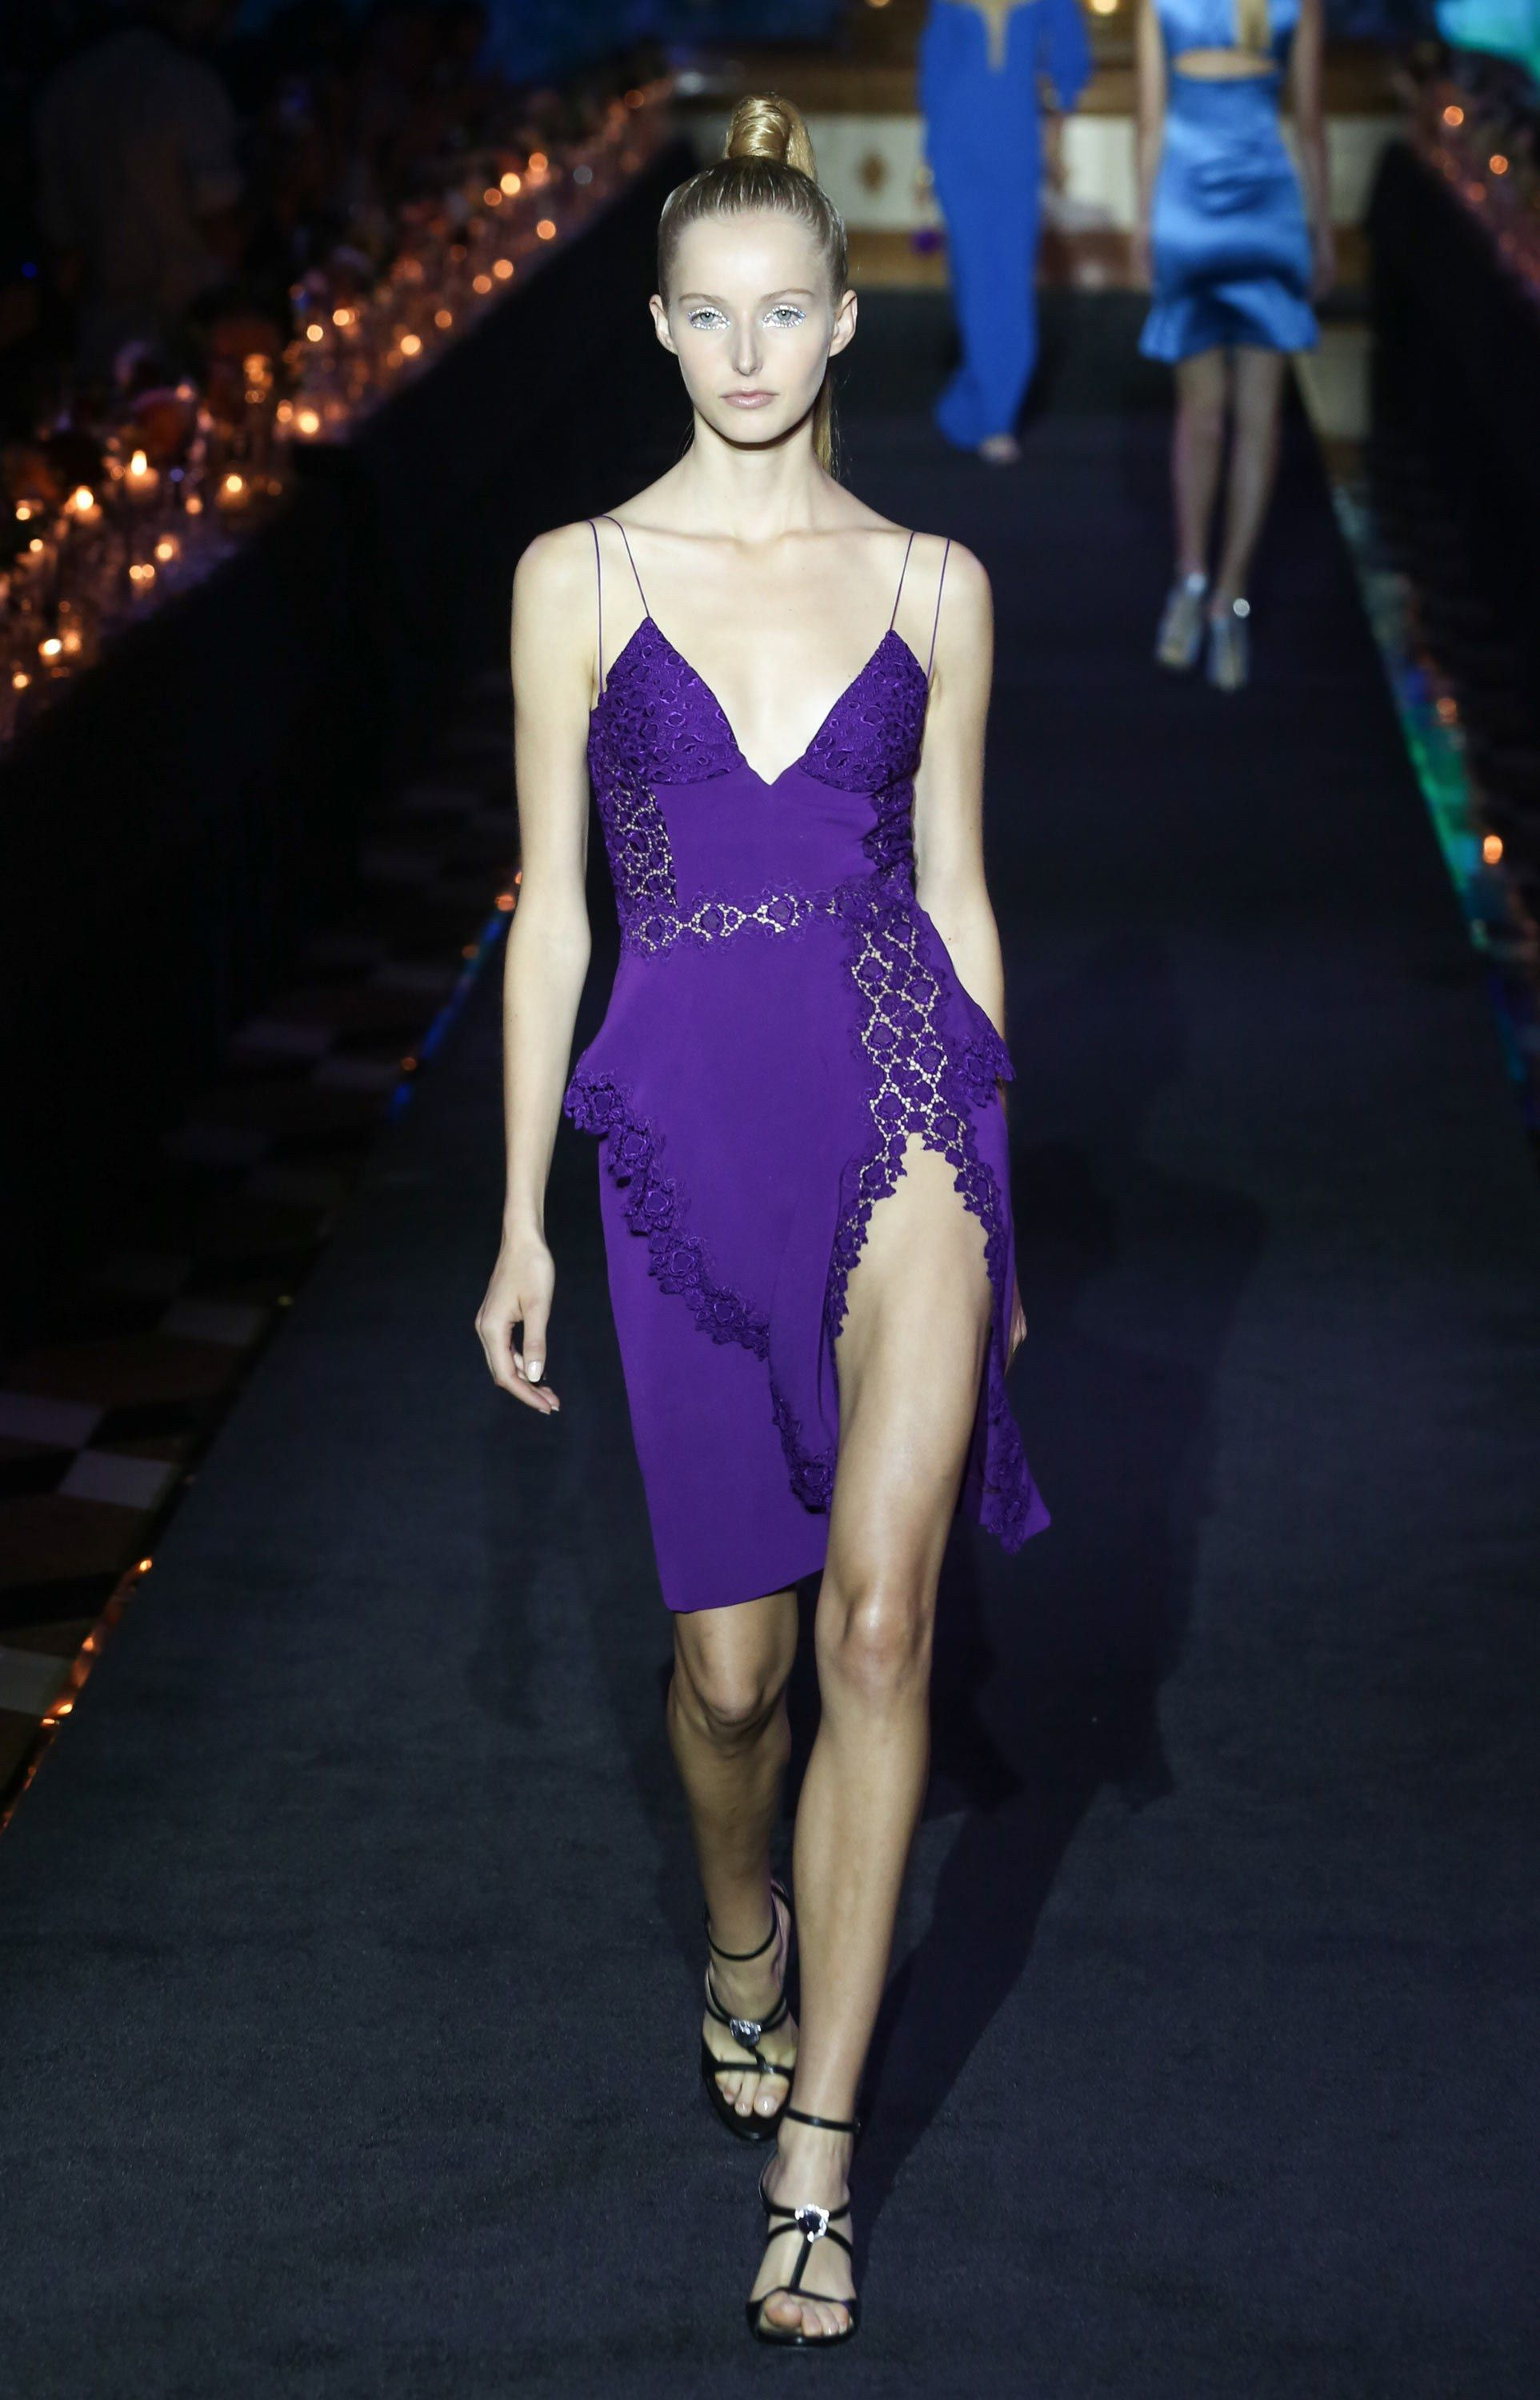 La Perla Spring 2018 Ready To Wear Fashion Show Fashion Show Fashion Ready To Wear